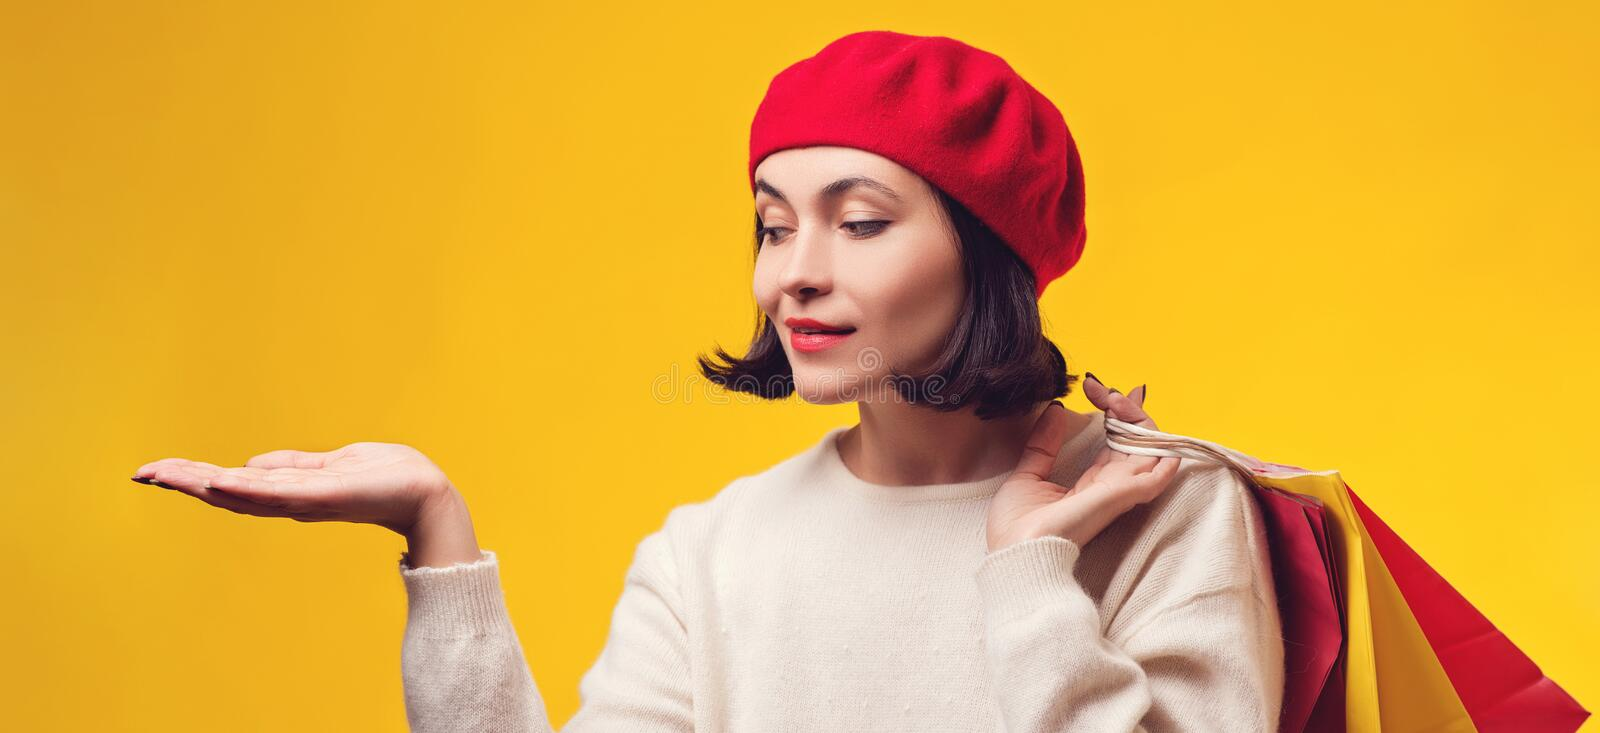 Pretty girl holding shopping bags. Woman in red hat with presentation. Girl showing your product with open hand palm. Shopping stock photography